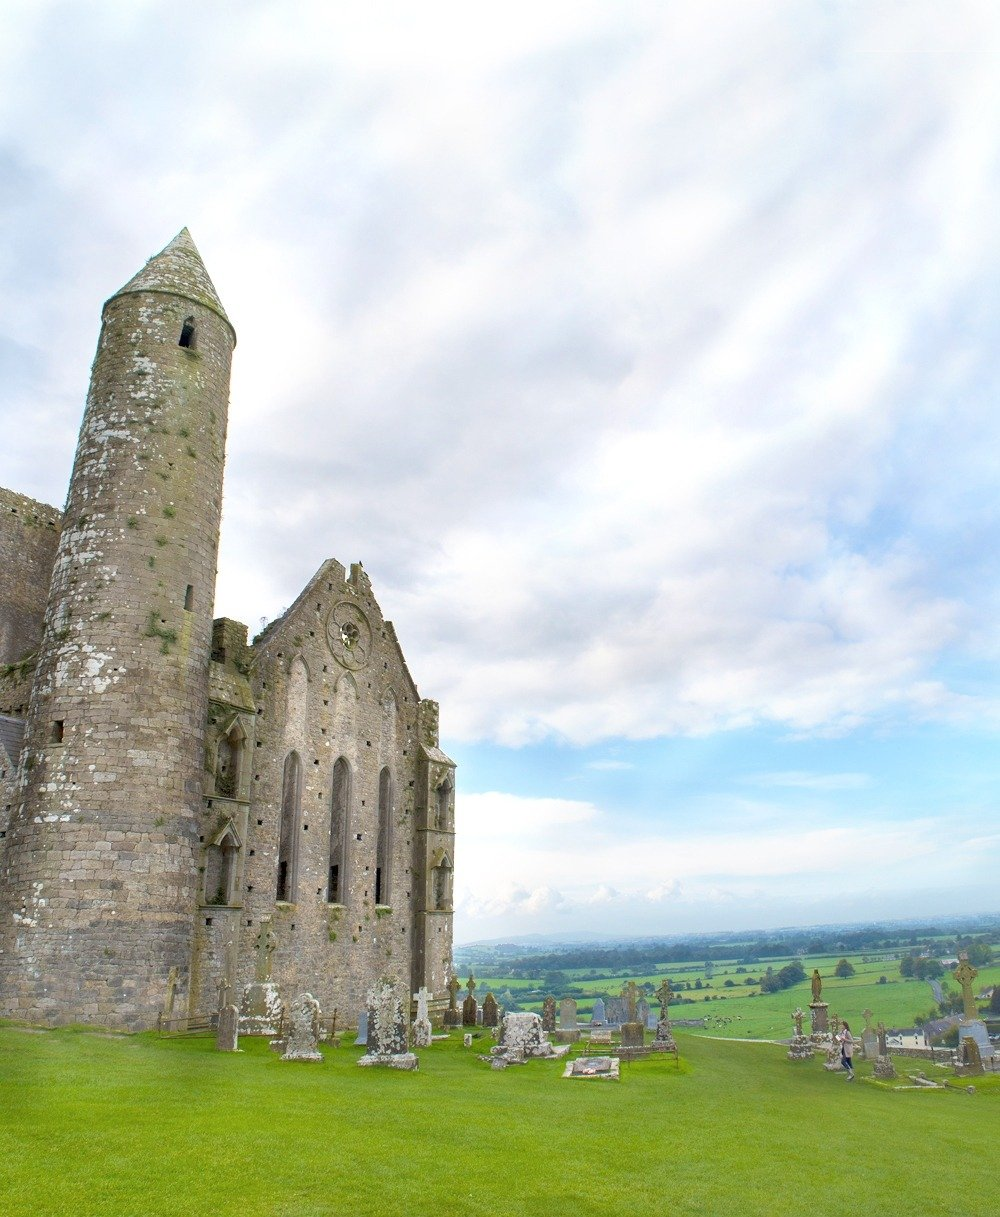 Travel Highlights From The Rock of Cashel